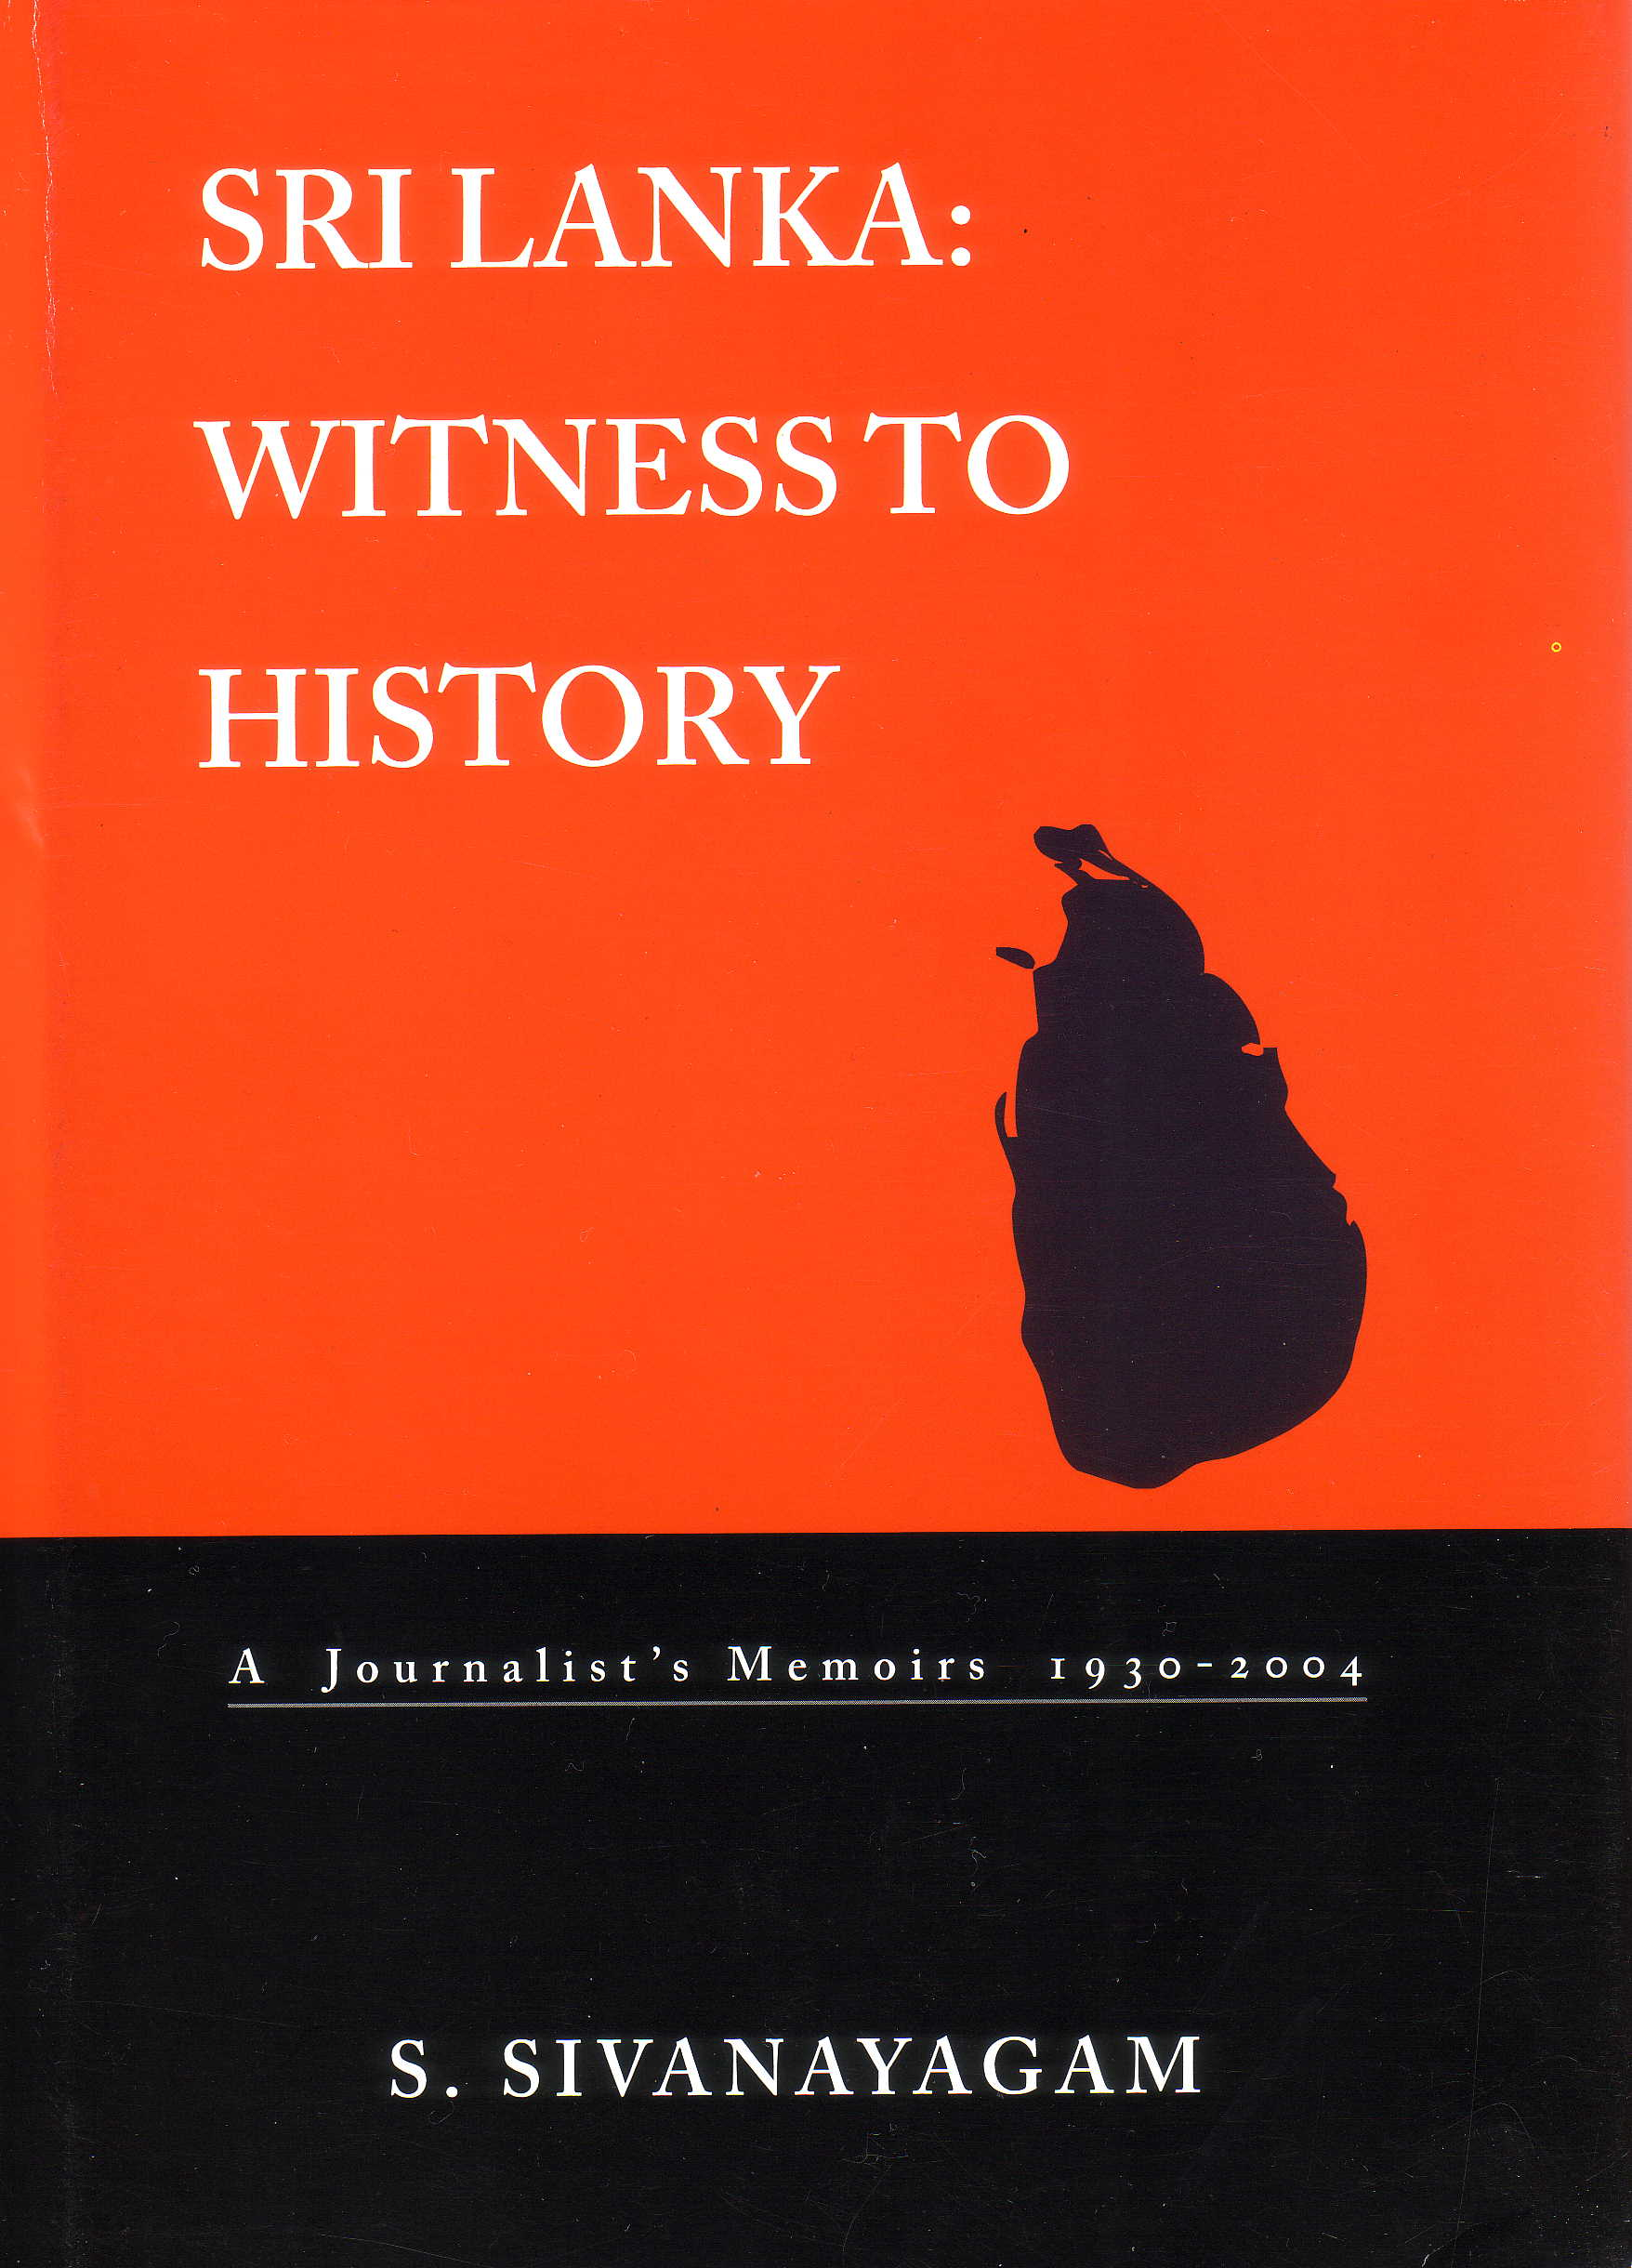 Sri Lanka Witness to History book cover